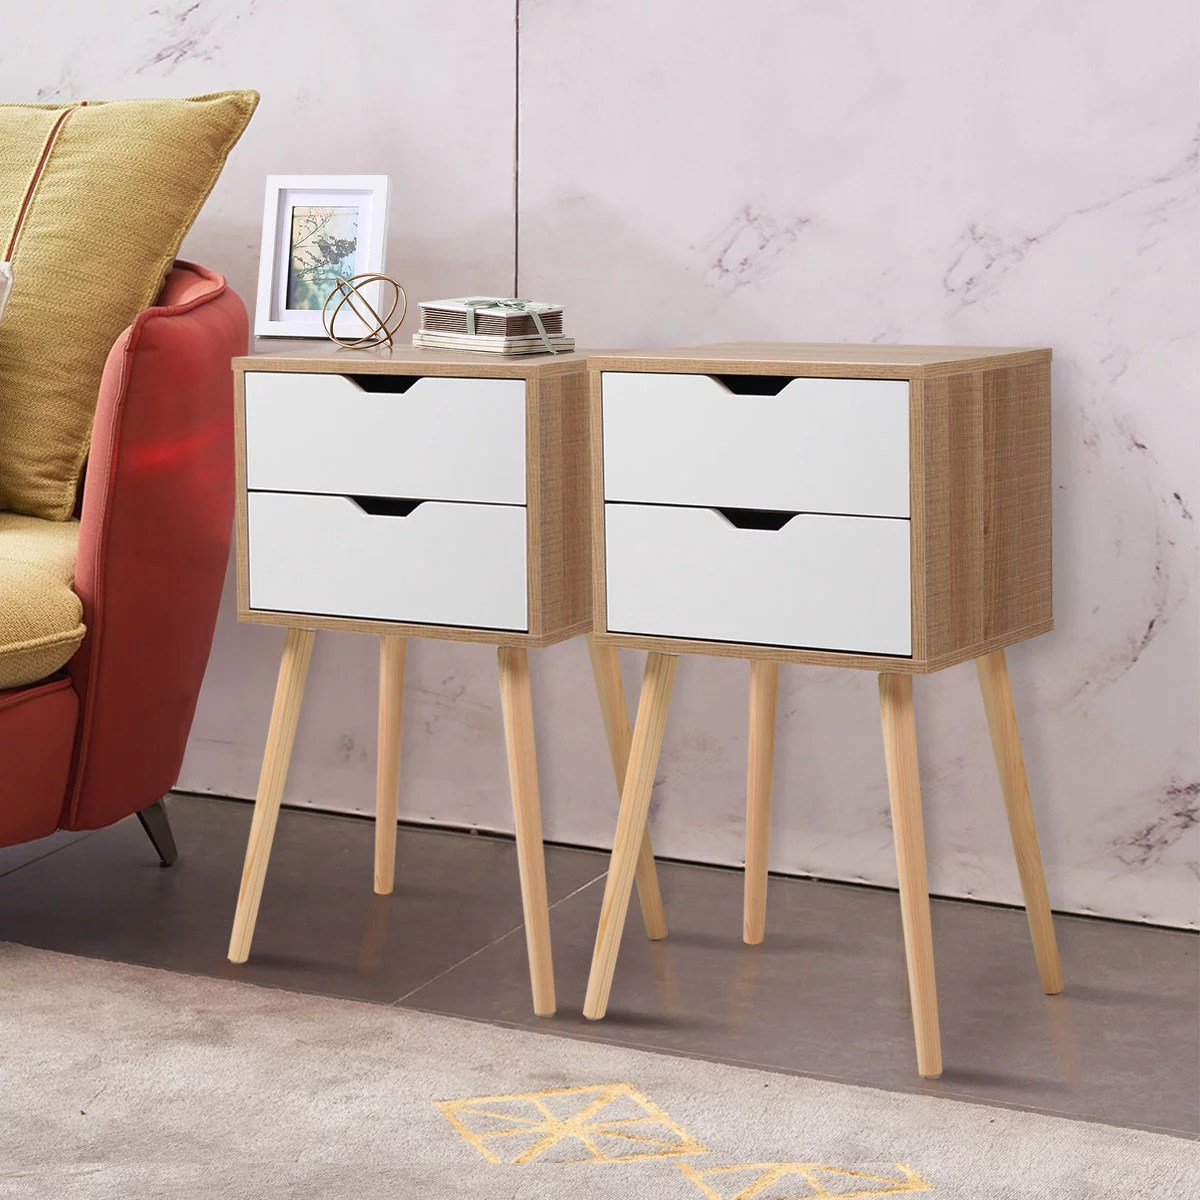 jaxpety set of 2 mid century modern nightstand bedside table sofa end table bedroom decor 2 drawers storage with solid wood legs white